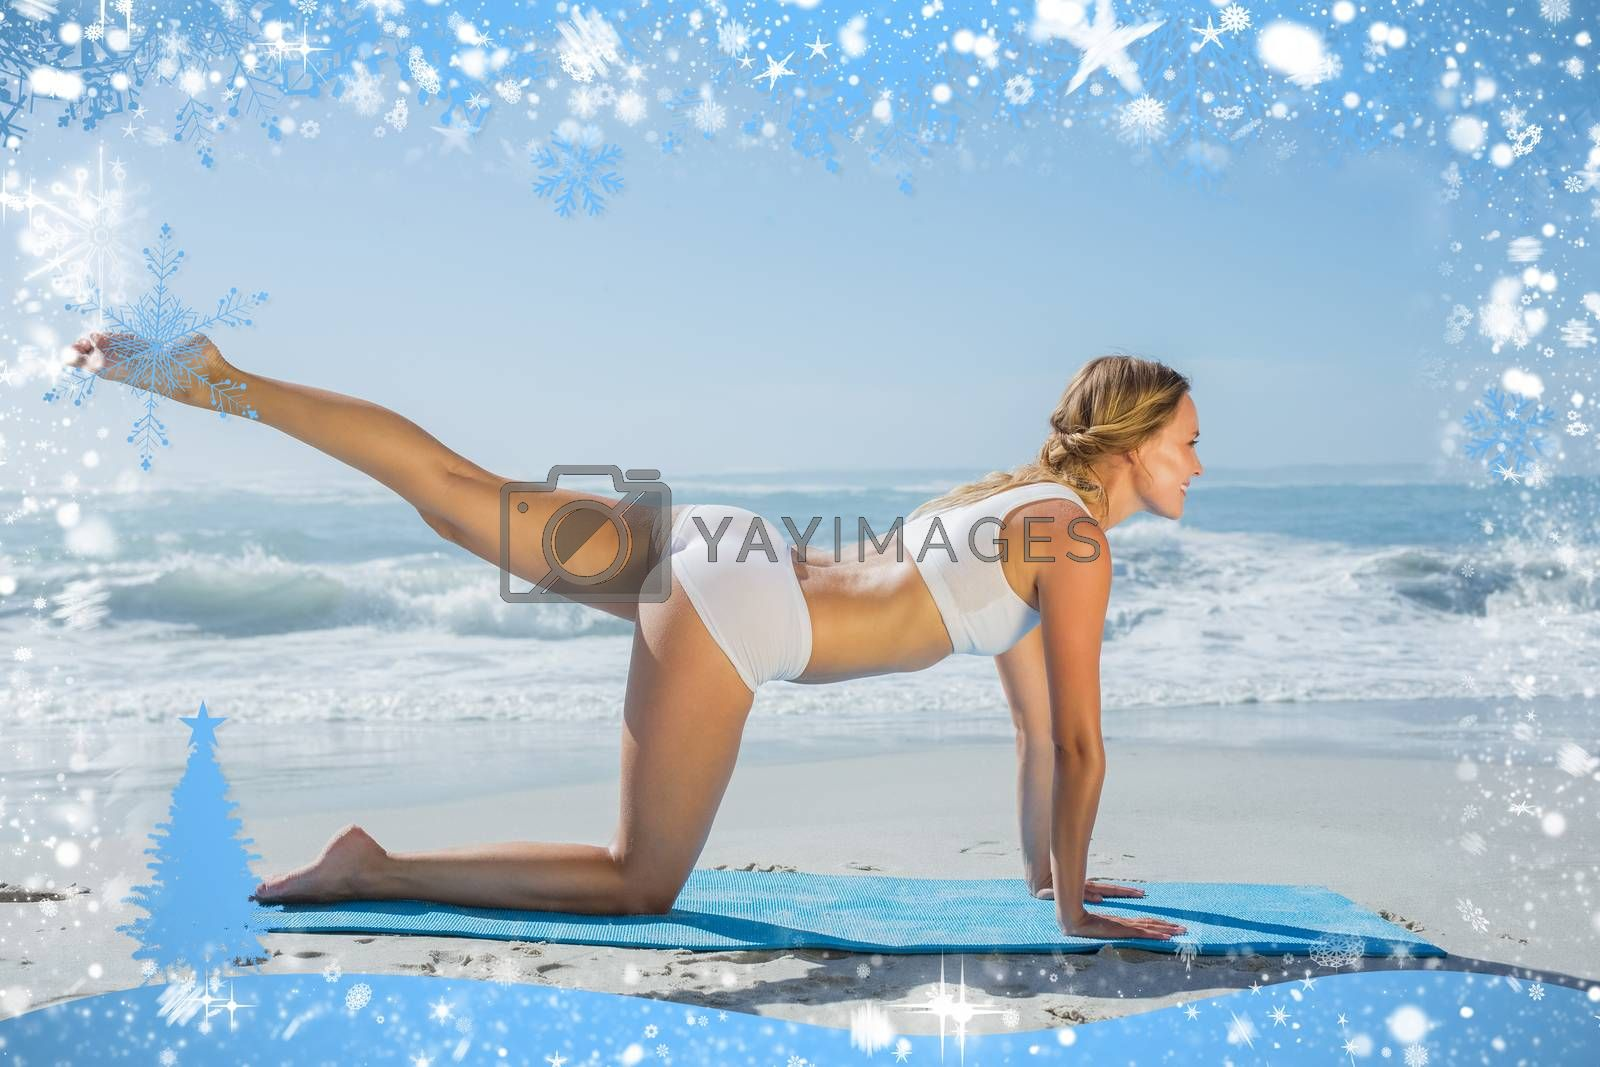 Gorgeous fit blonde in pilates pose on the beach against snow